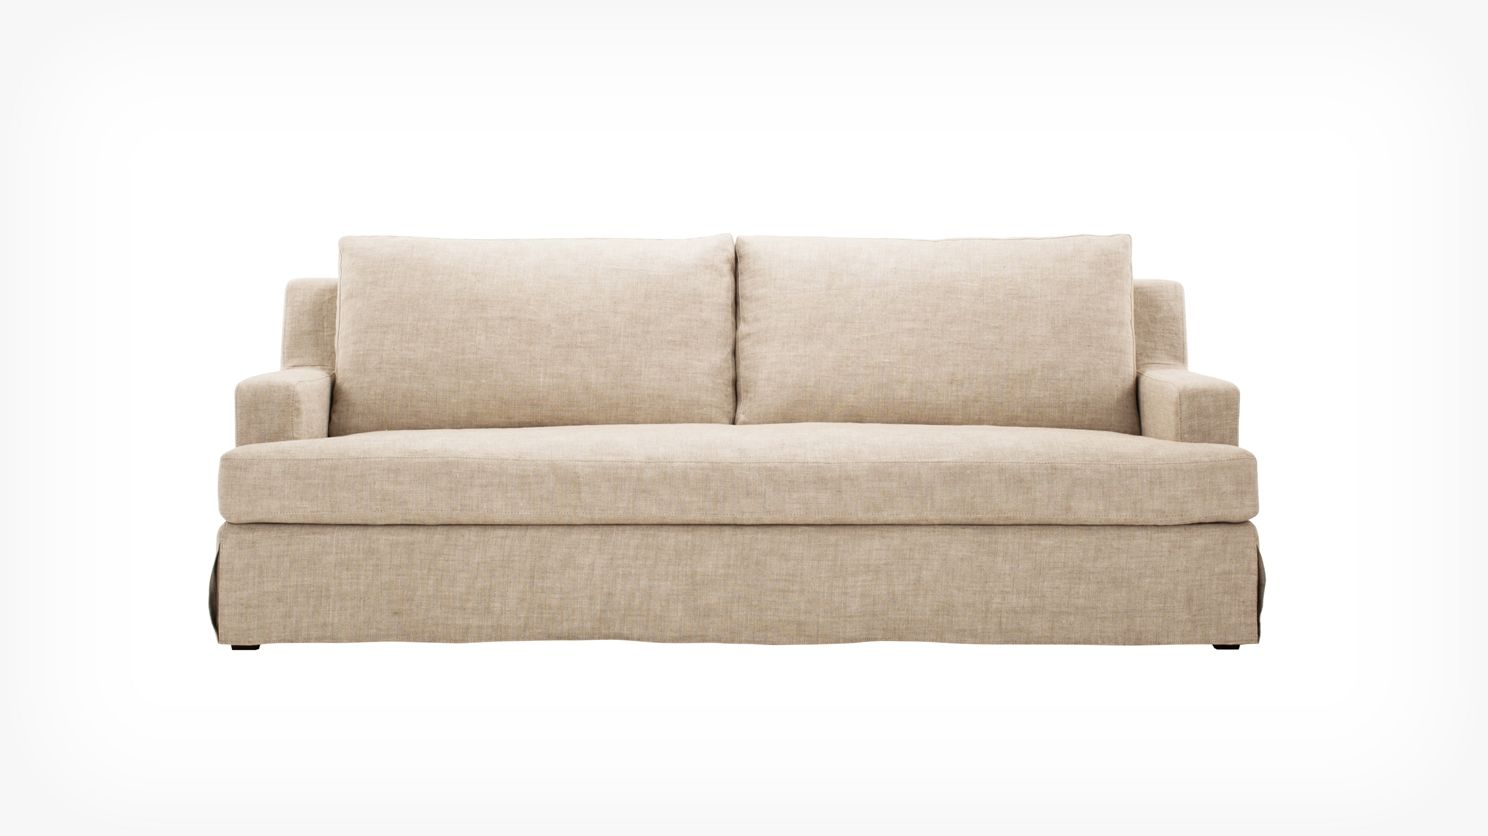 beautiful contemporary sectional sofa inspiration-Modern Contemporary Sectional sofa Layout